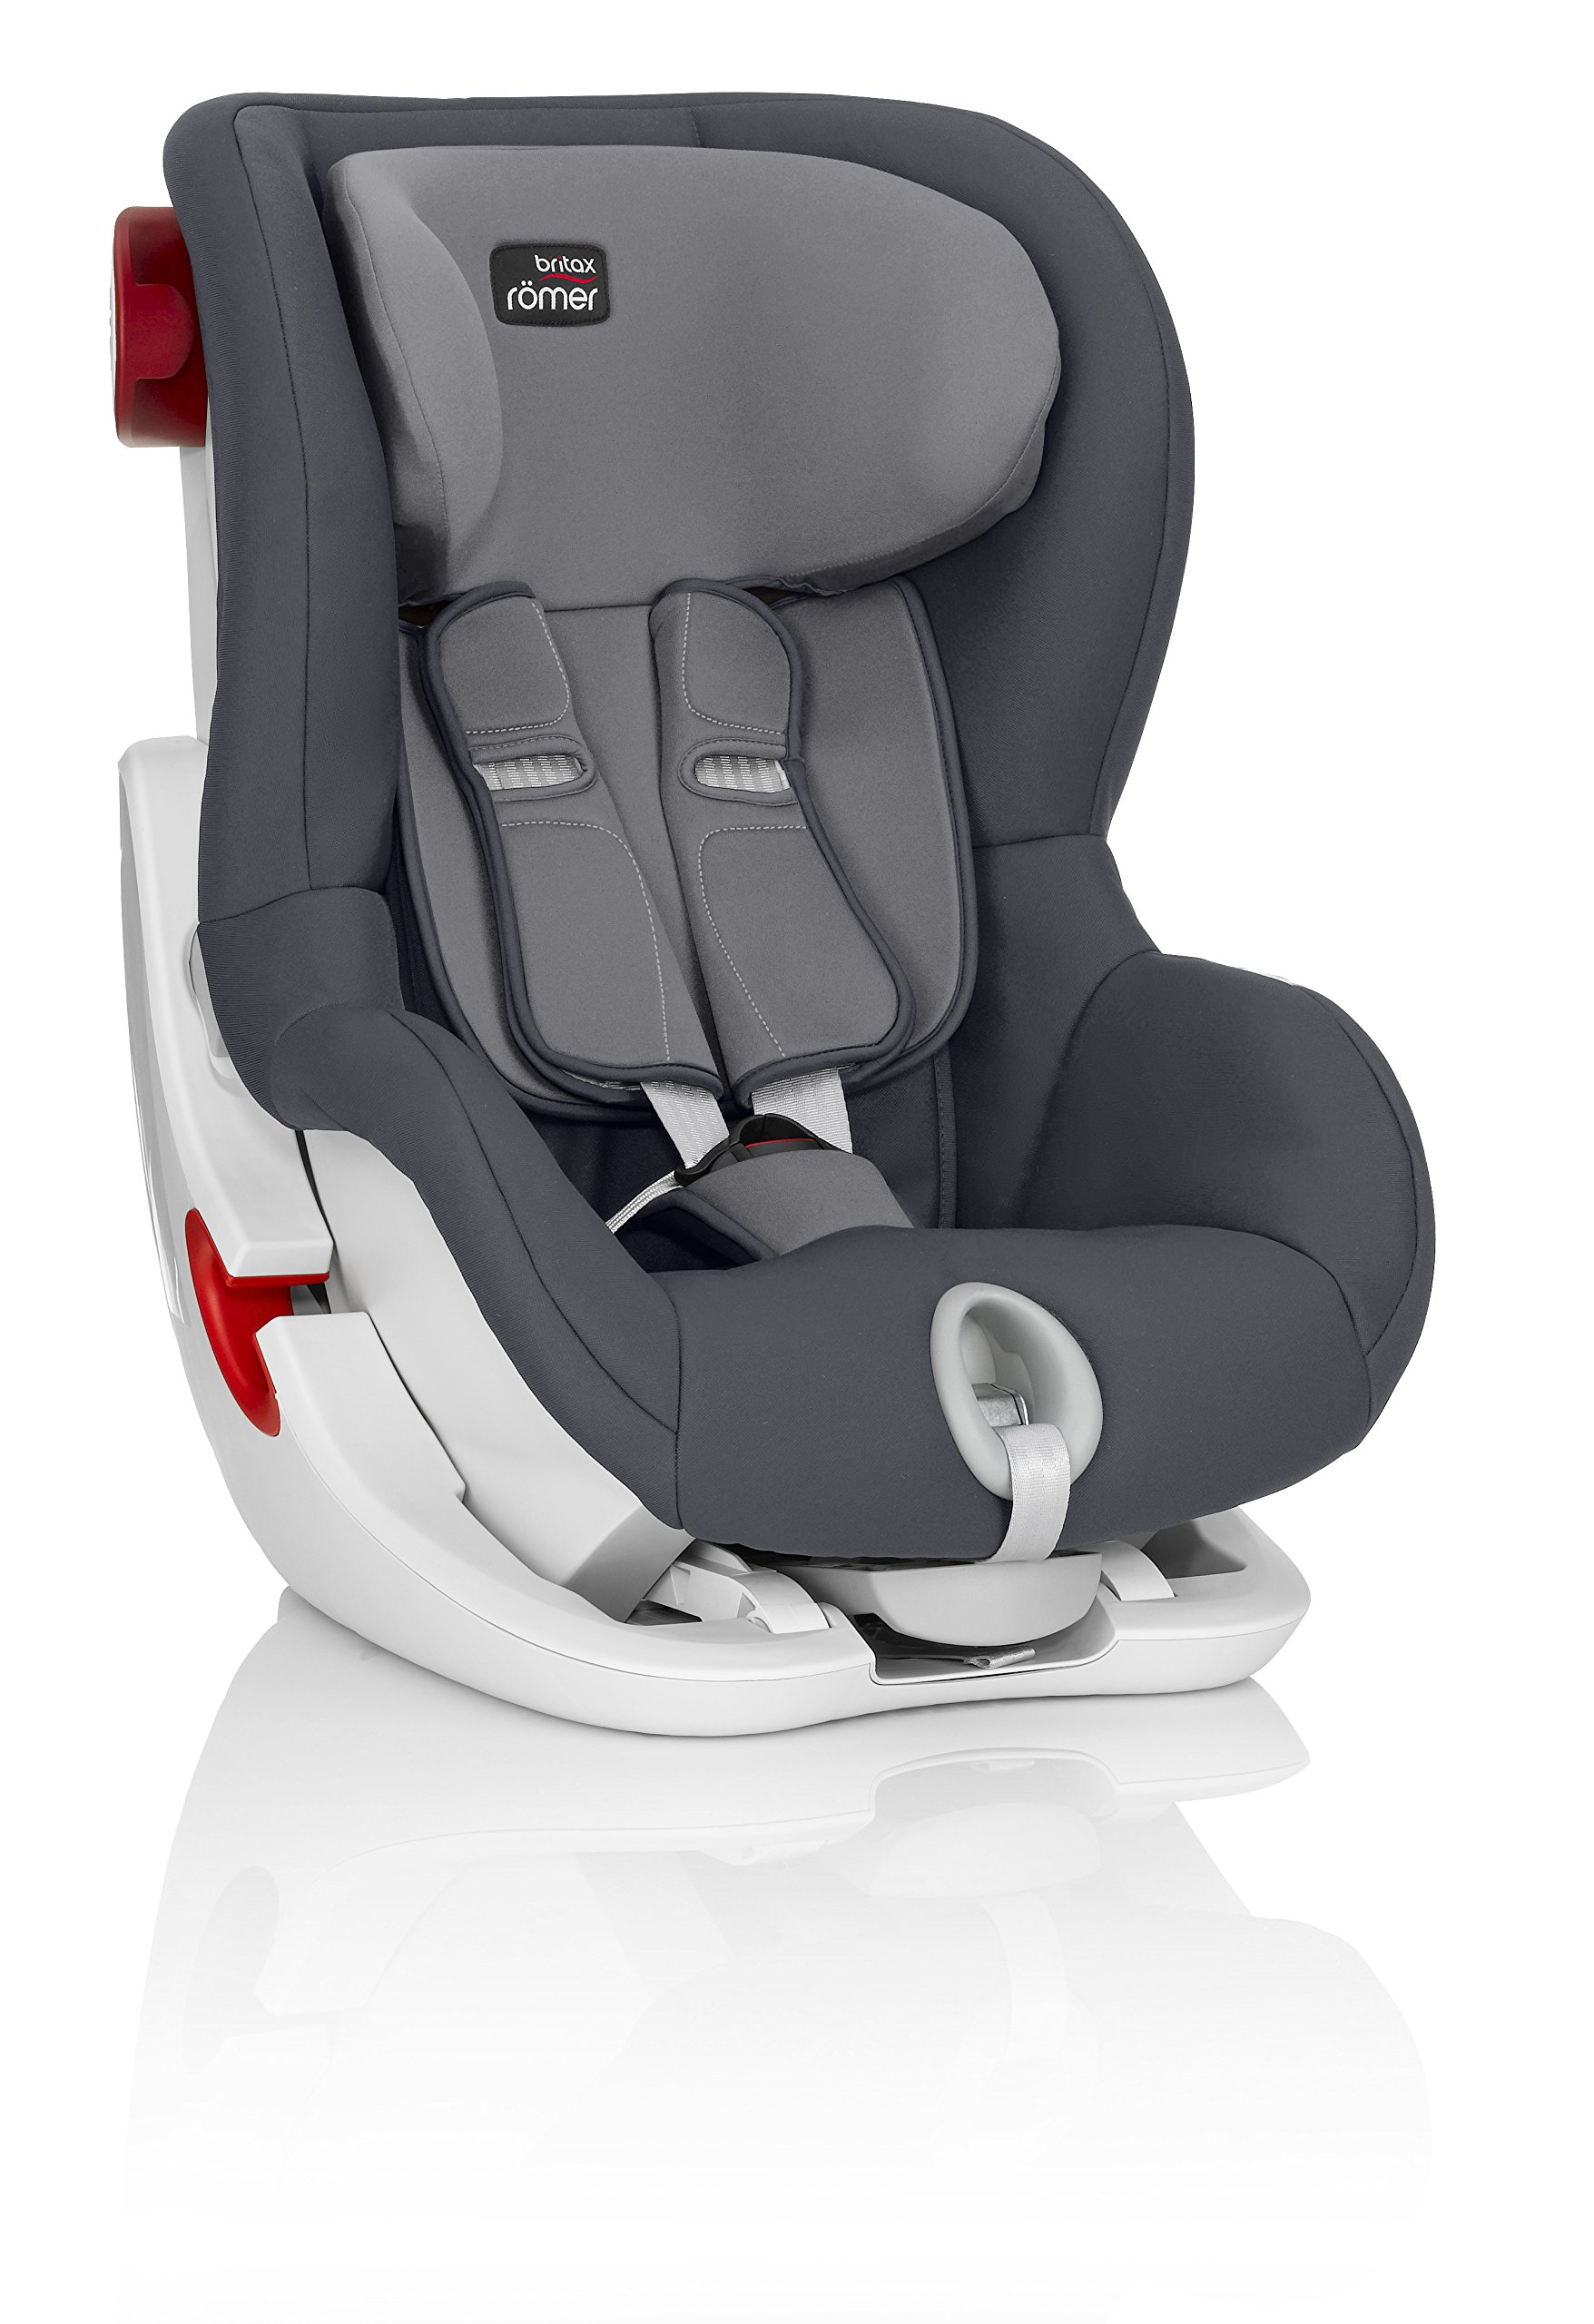 Britax Römer King II Group 1 (9-18kg) Car Seat - Storm Grey  Easy installation - with tilting seat and patented seat belt tensioning system Optimum protection - performance chest pads, deep, padded side wings 3